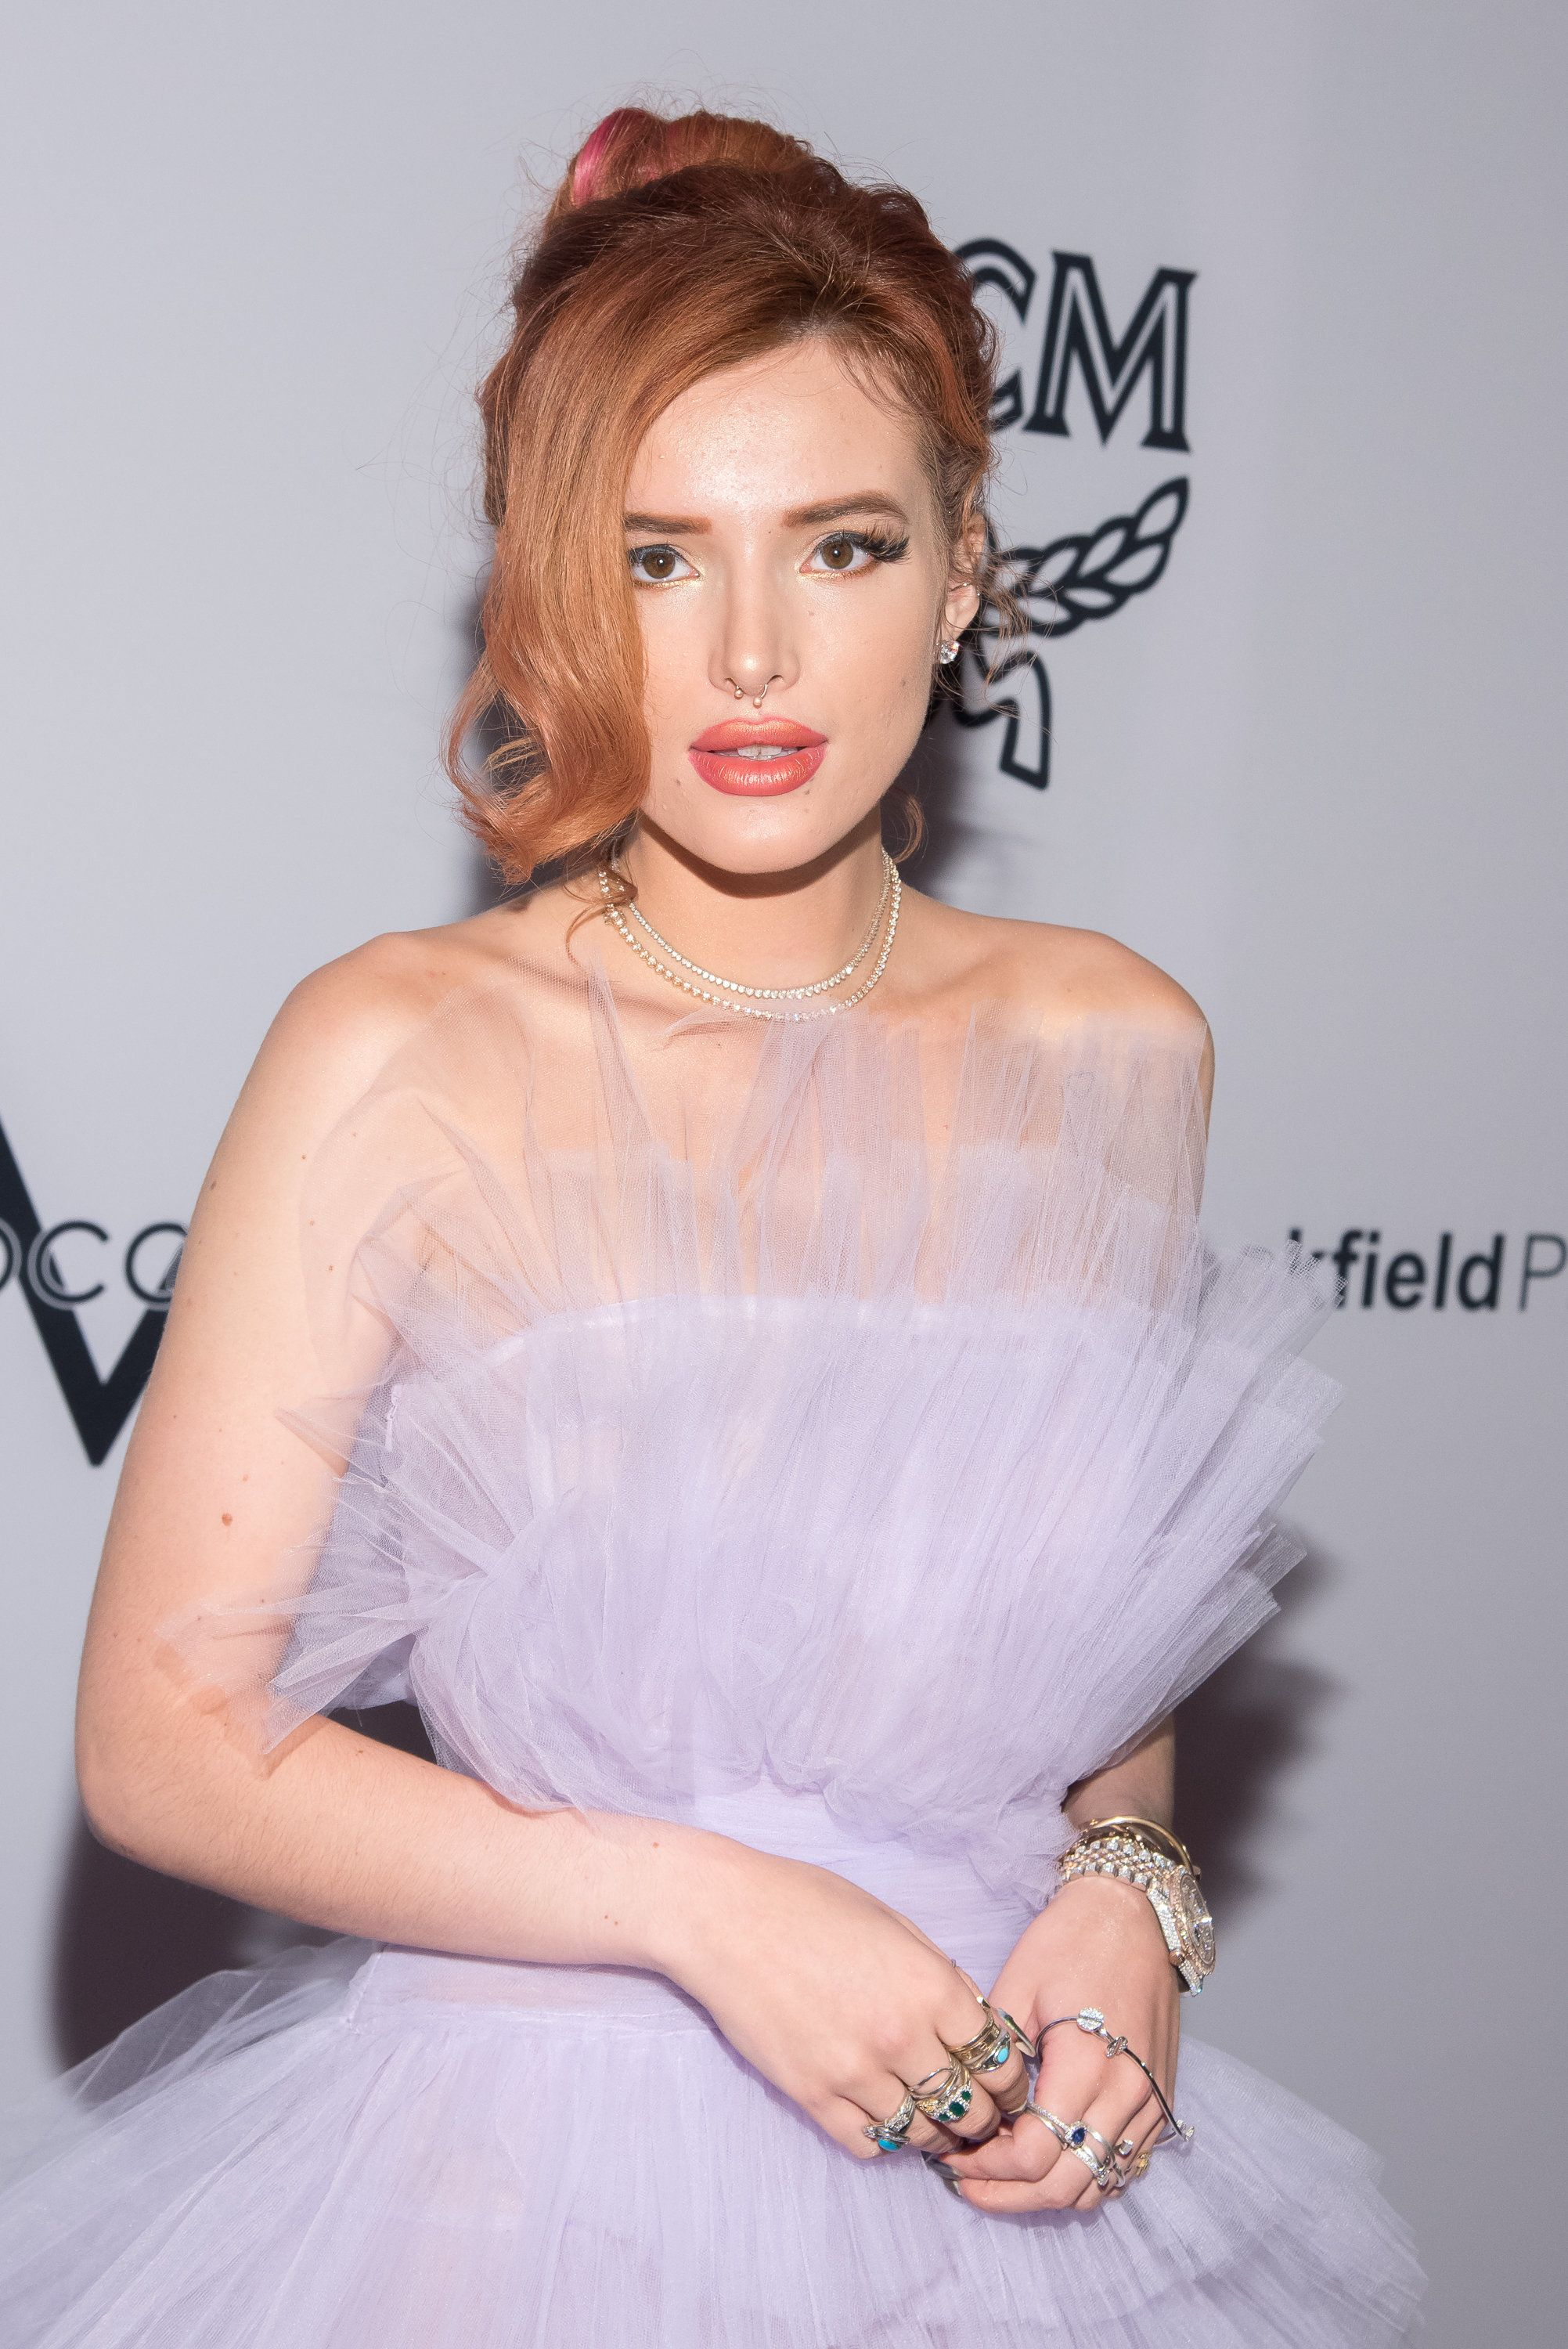 NEW YORK, NY - SEPTEMBER 08:  Bella Thorne attends the Daily Front Row's Fashion Media Awards at Four Seasons Hotel New York Downtown on September 8, 2017 in New York City.  (Photo by Mike Pont/WireImage)